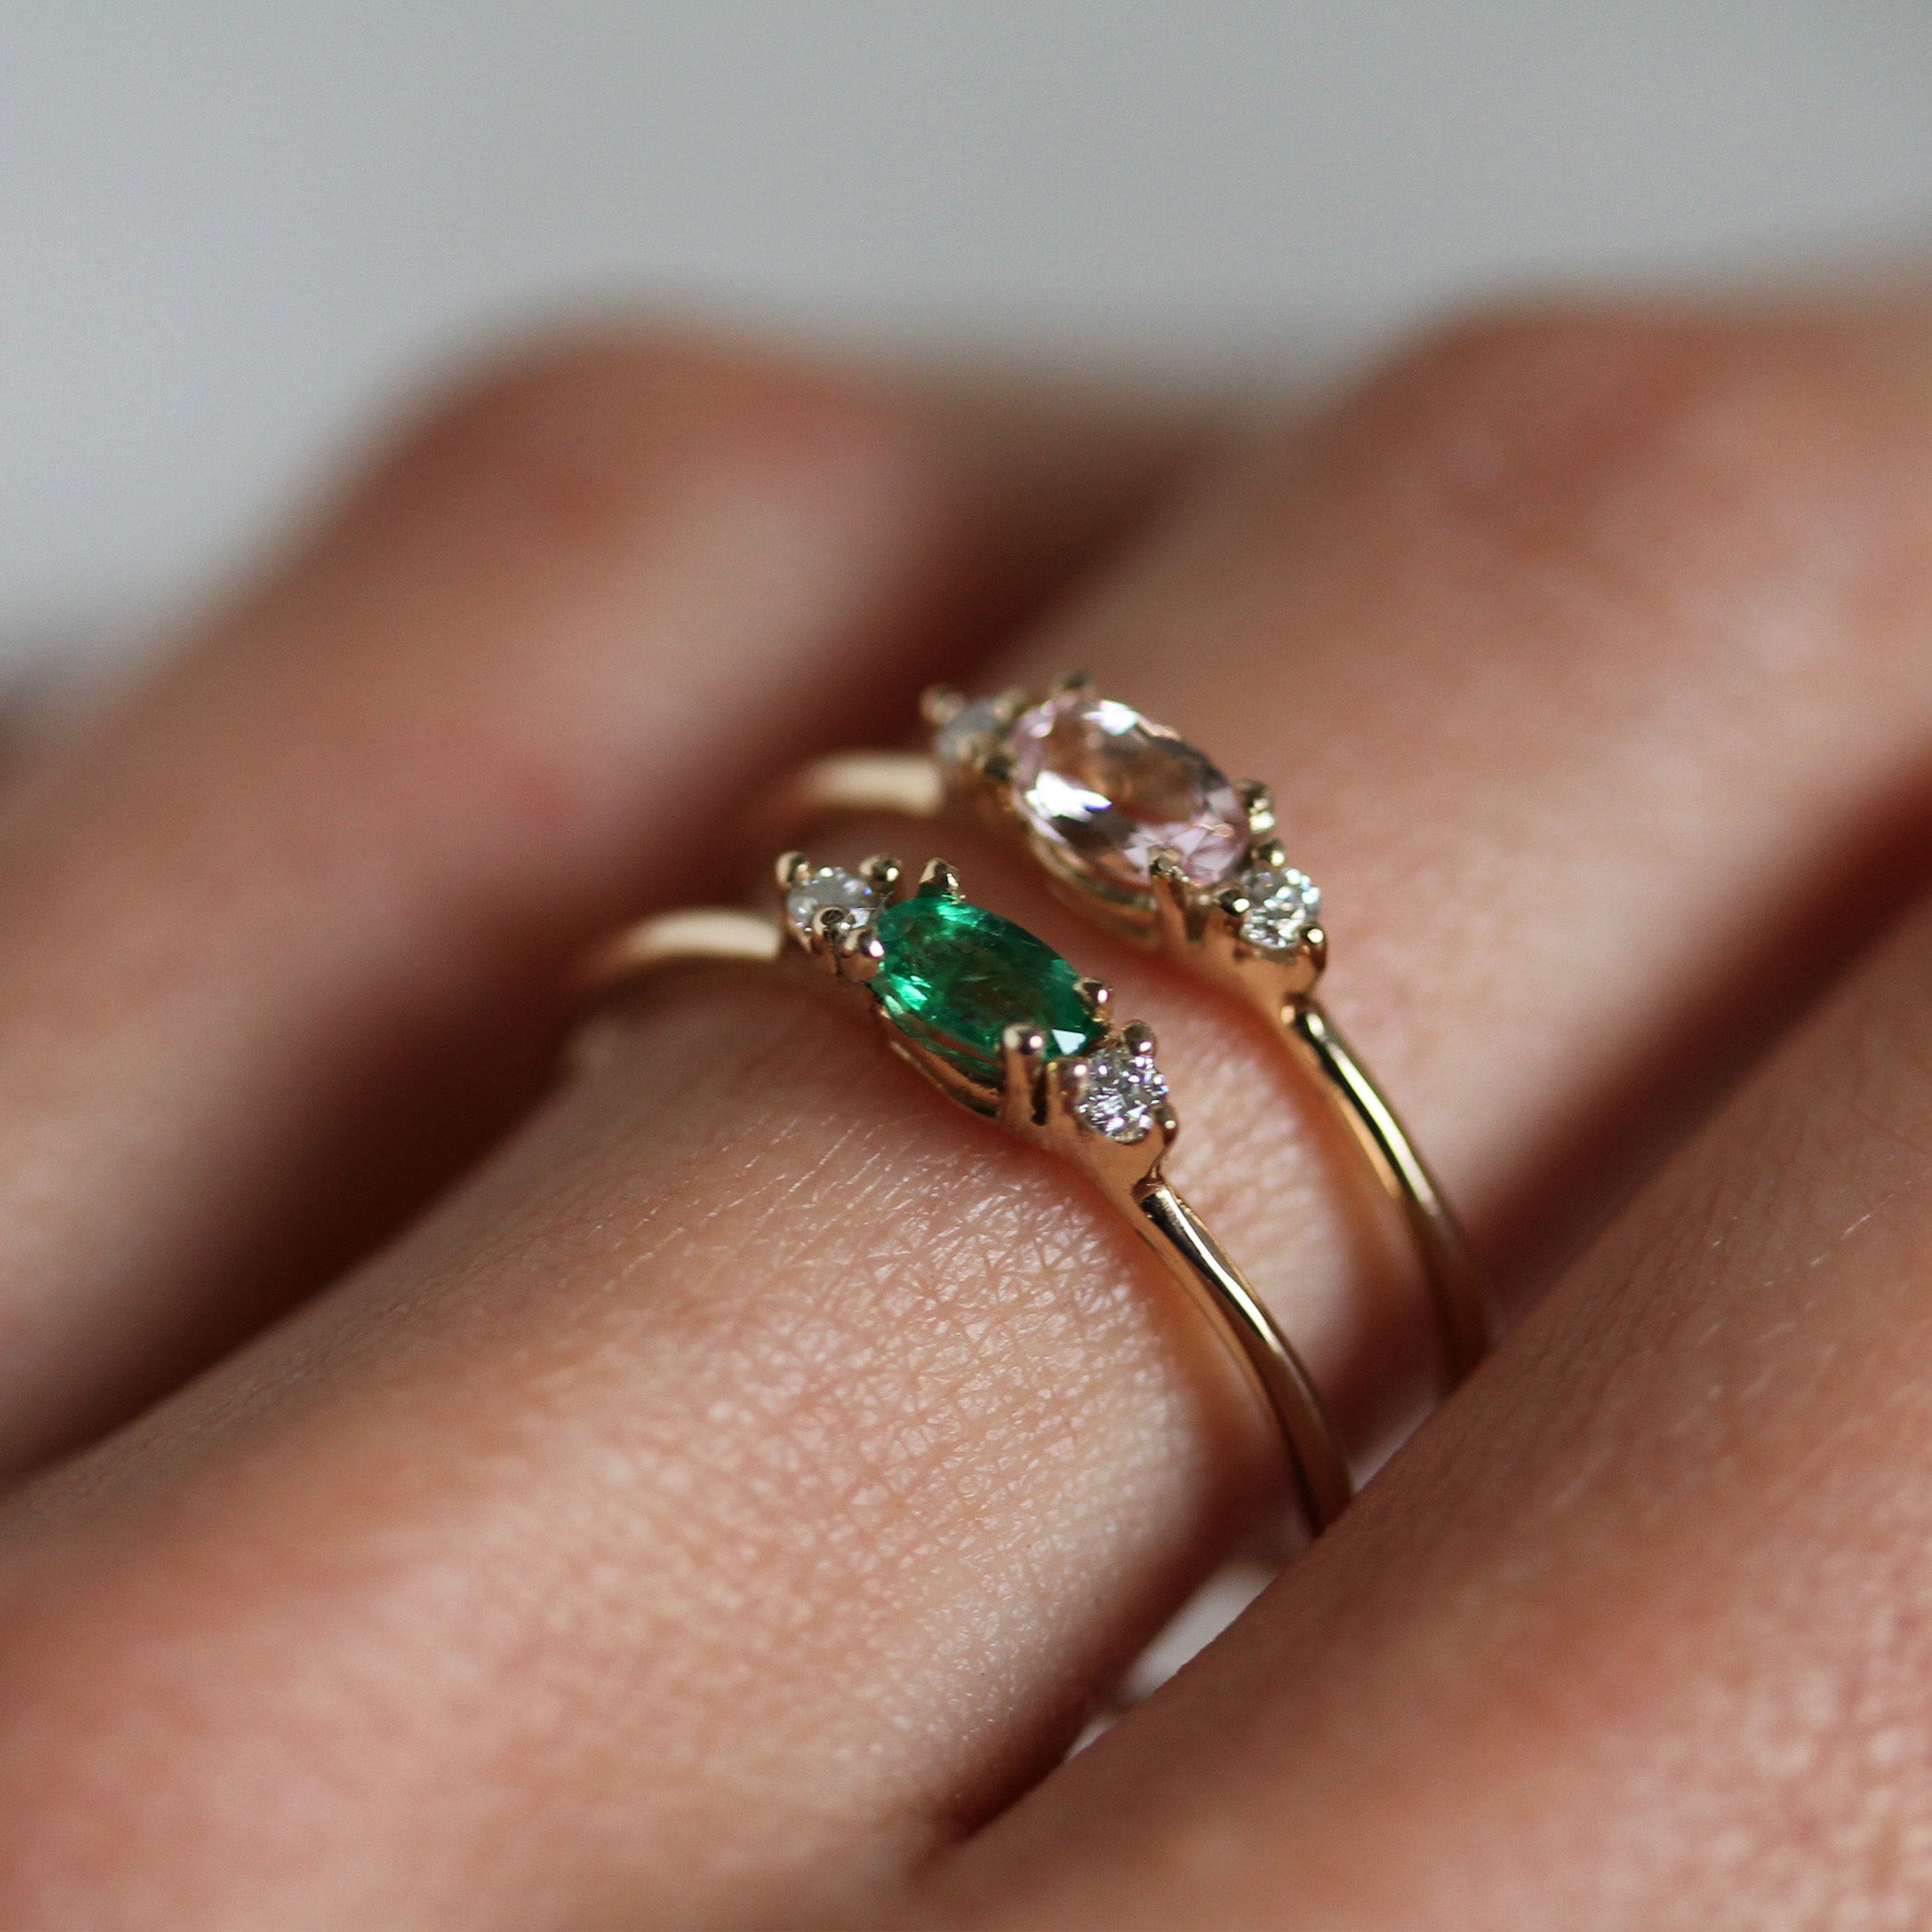 engagement accented an click emerald this pin customize wedding ring is cut diamond camille to style through